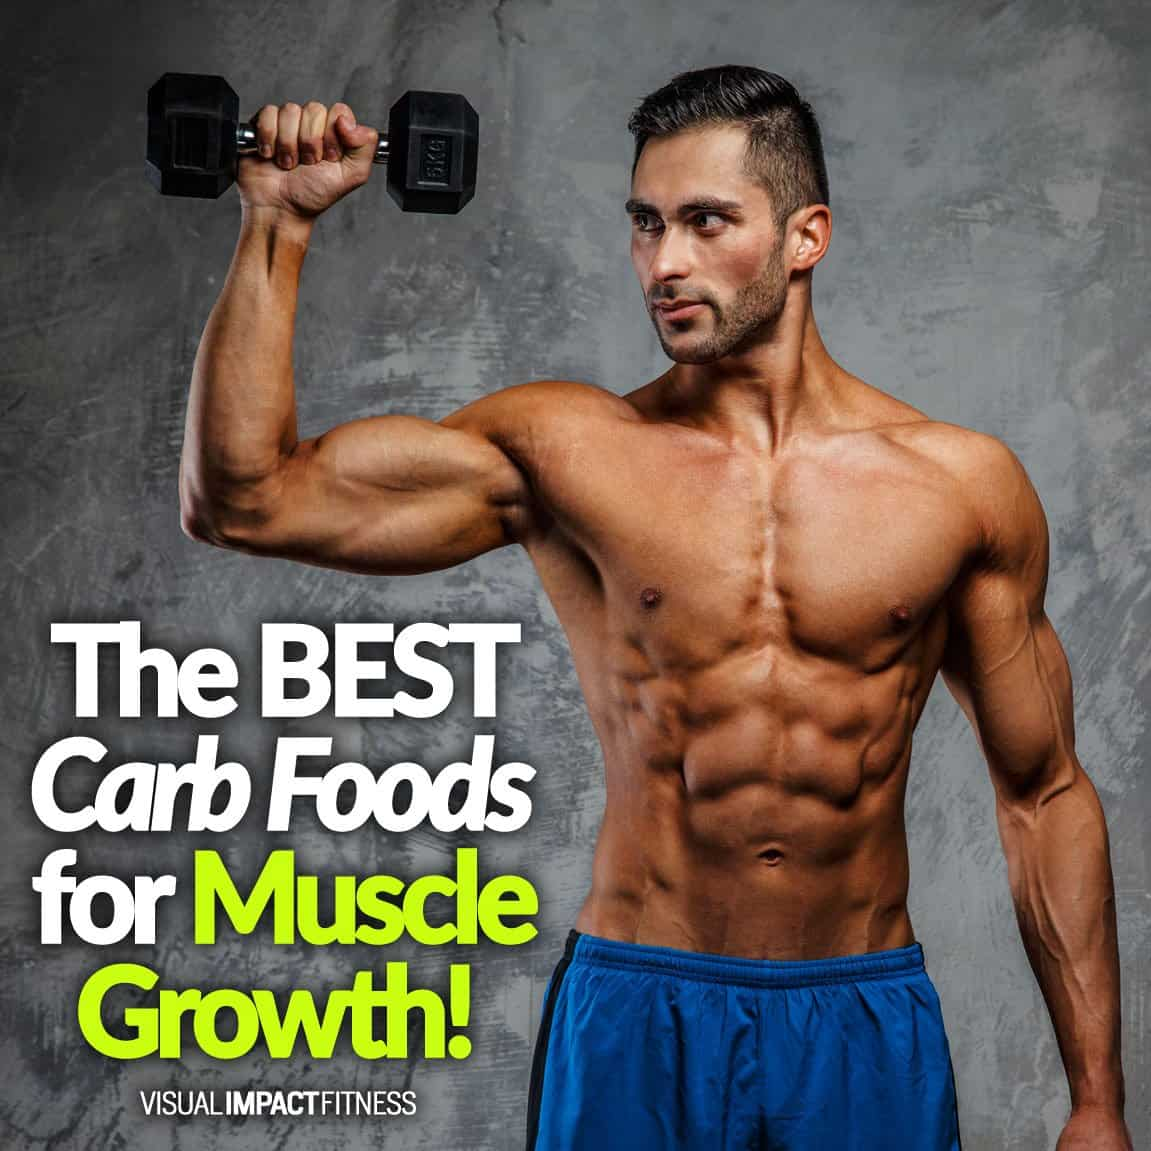 Best Carb Foods For Muscle Growth